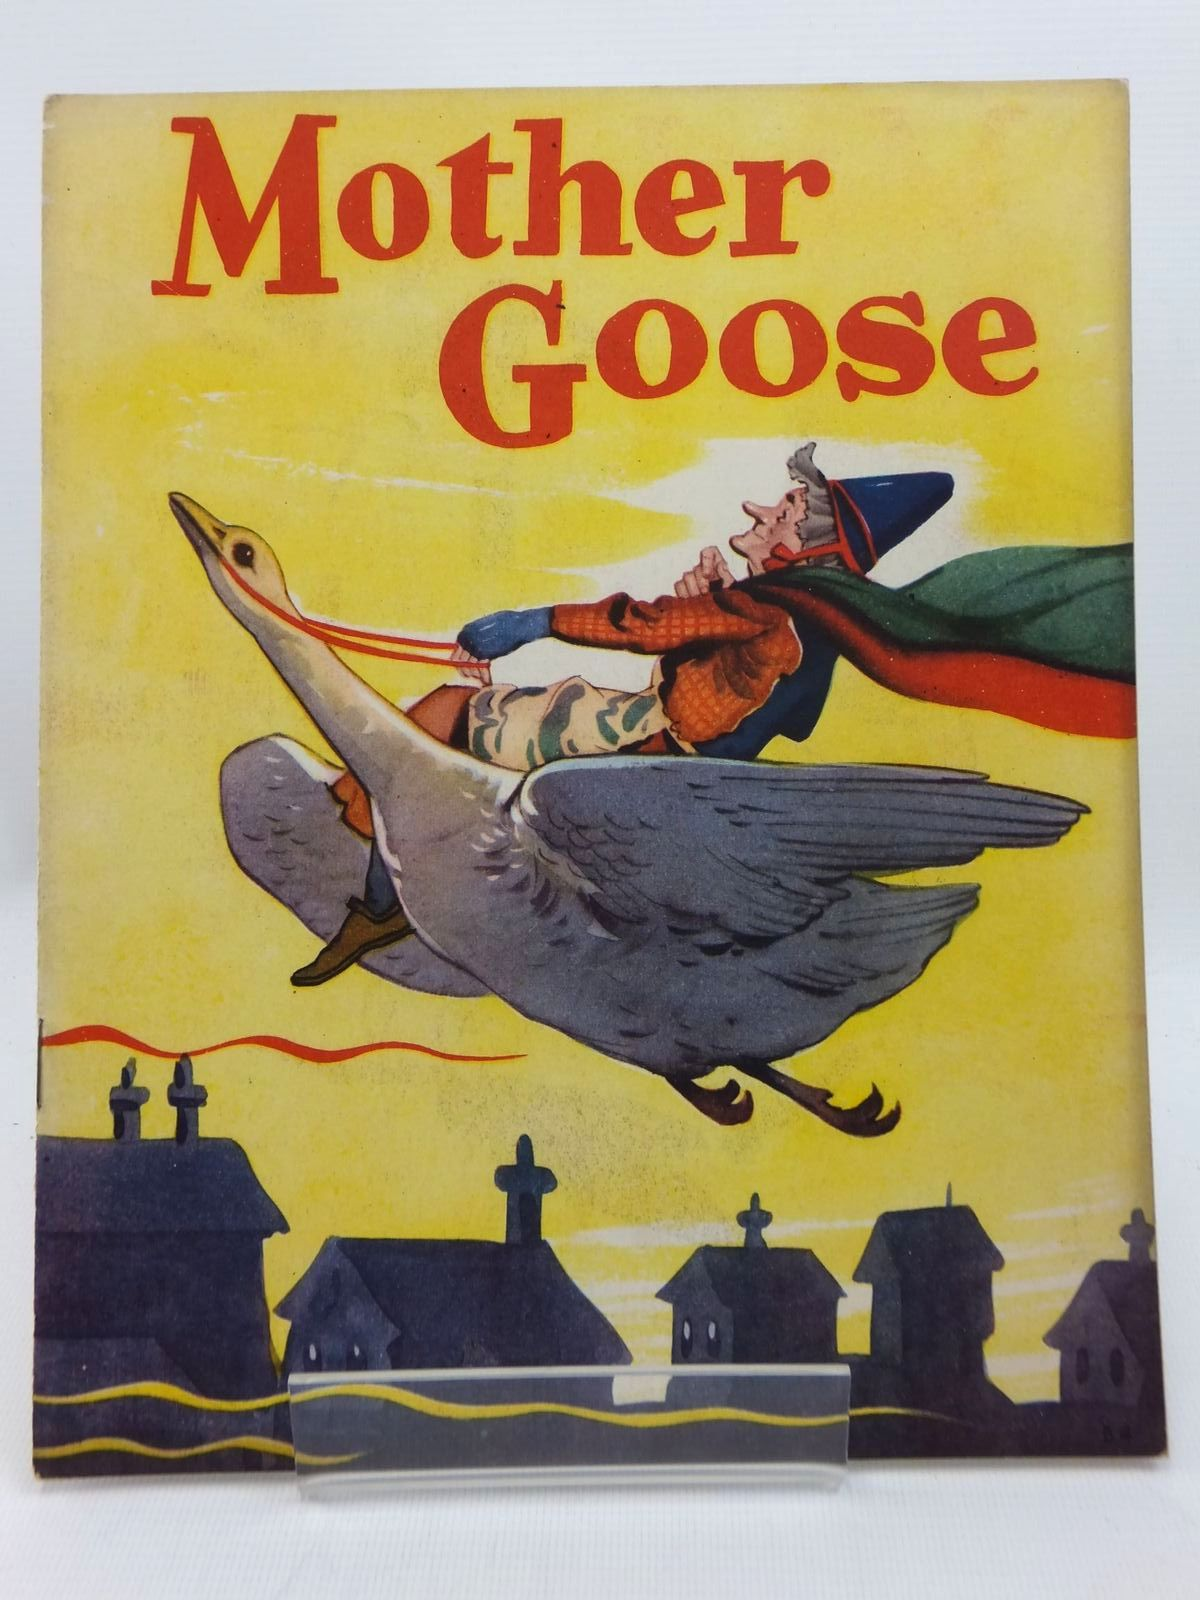 Photo of MOTHER GOOSE published by Wm. Collins Sons & Co. Ltd. (STOCK CODE: 1316874)  for sale by Stella & Rose's Books